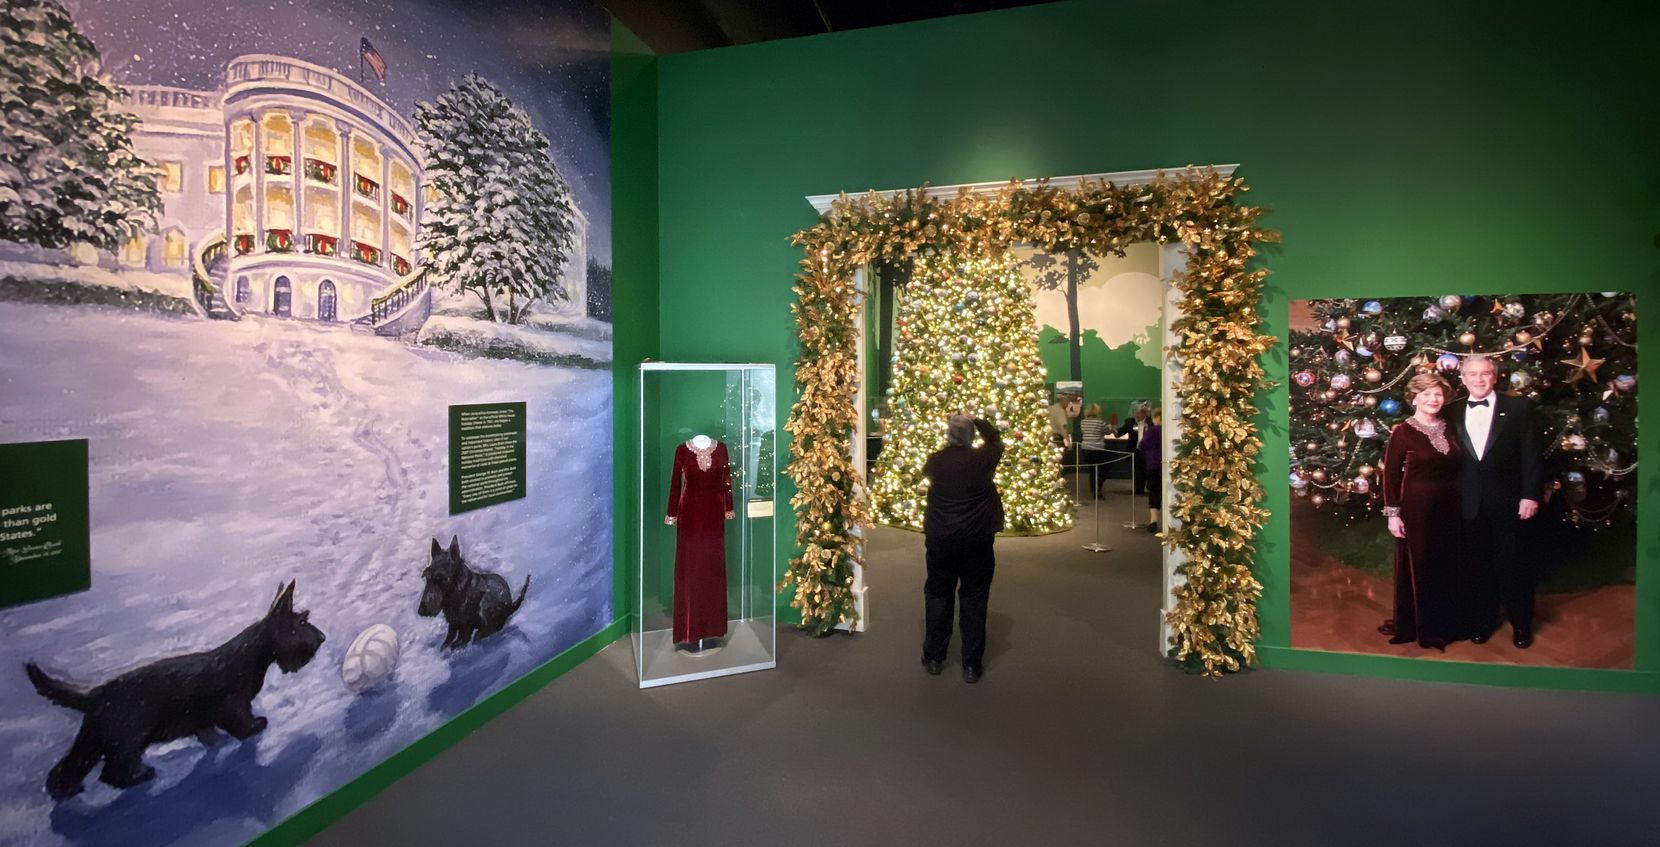 A visitor photographs an 18-foot replica of the official White House Blue Room Christmas tree from 2007 in the entryway of Holiday in the National Parks exhibit at the George W. Bush Presidential Center in University Park.